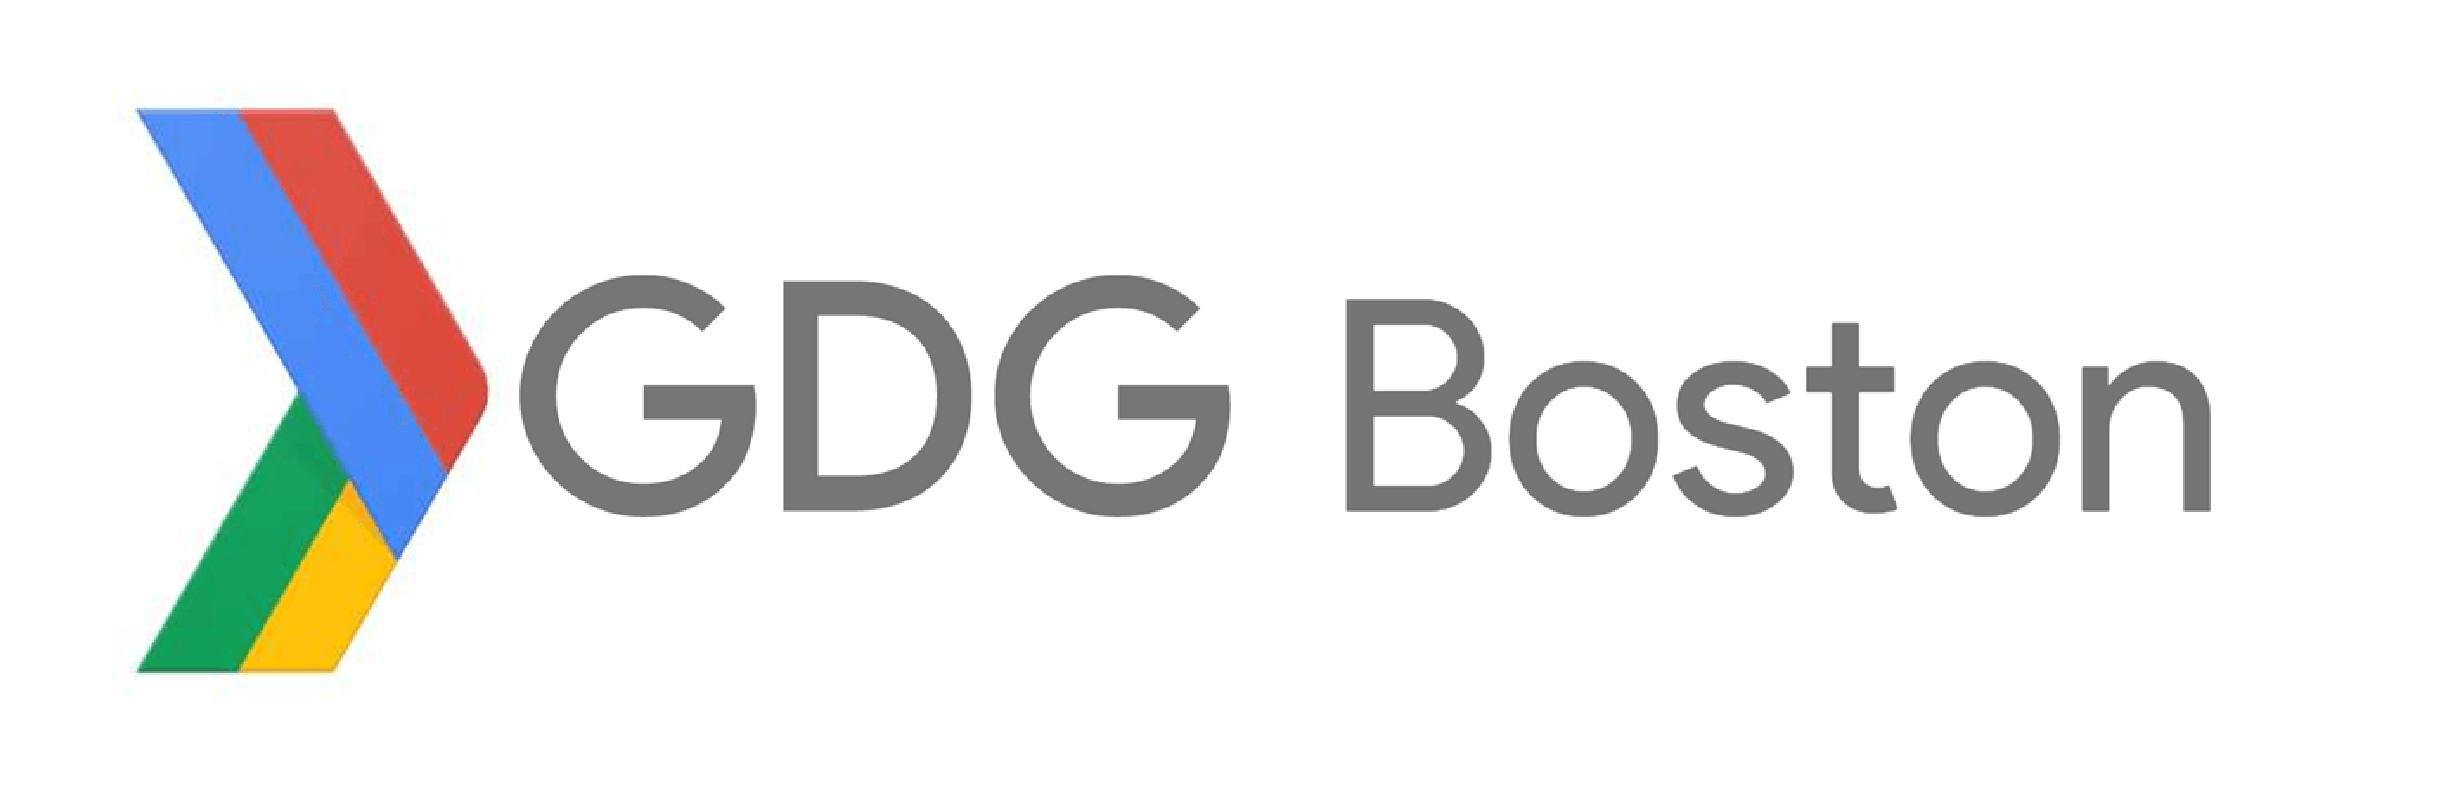 gdg-boston-logo-sized.png